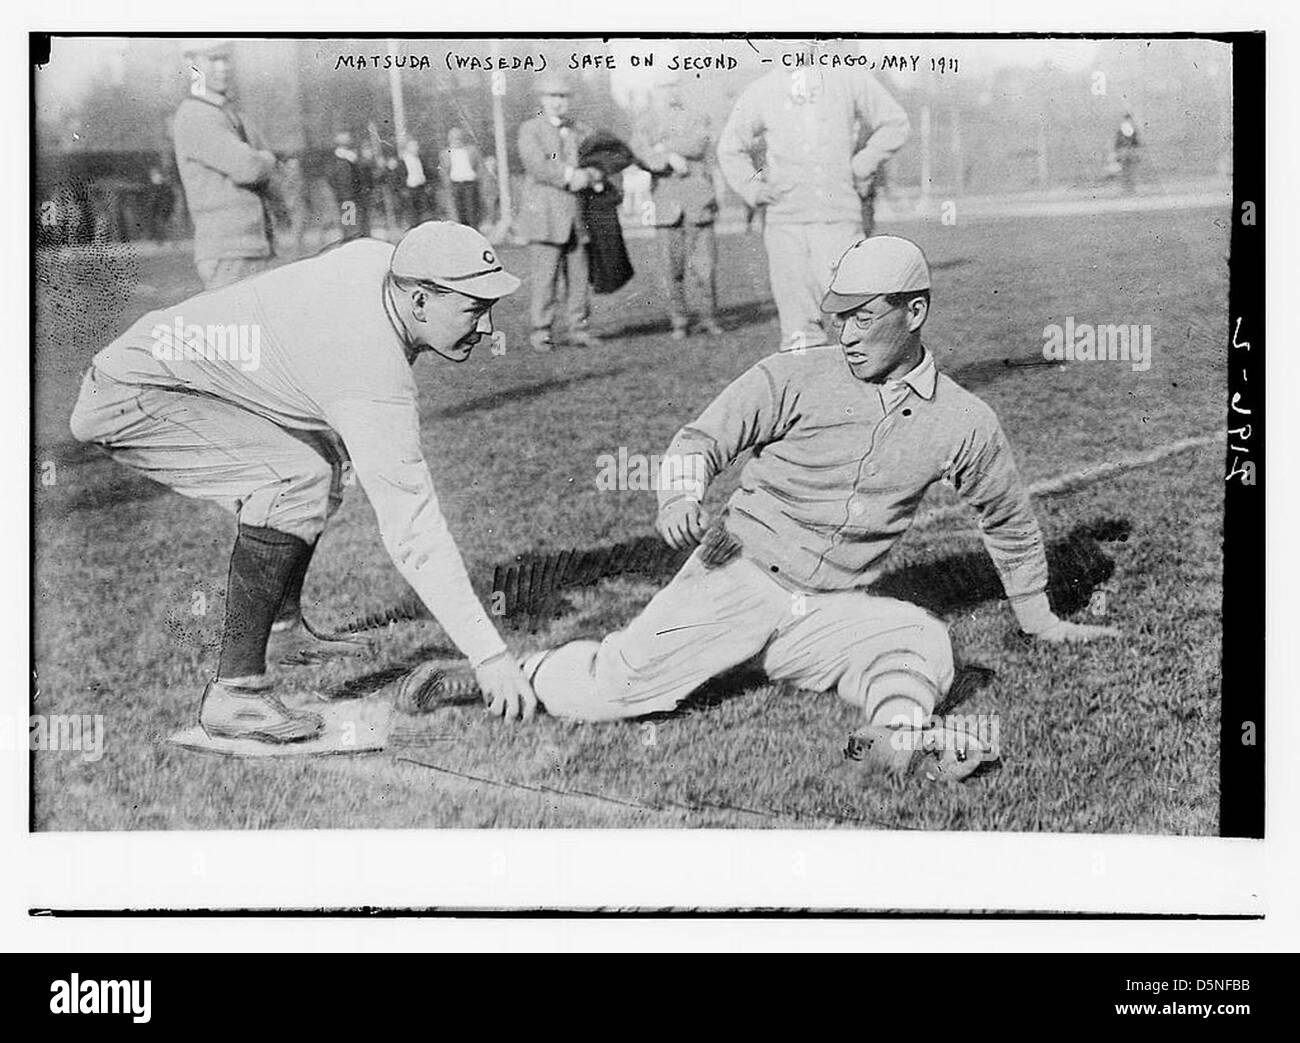 [Matsuda (Waseda University, Japan) is safe; a re-enactment of a play from a baseball game with Chicago University, - Stock Image